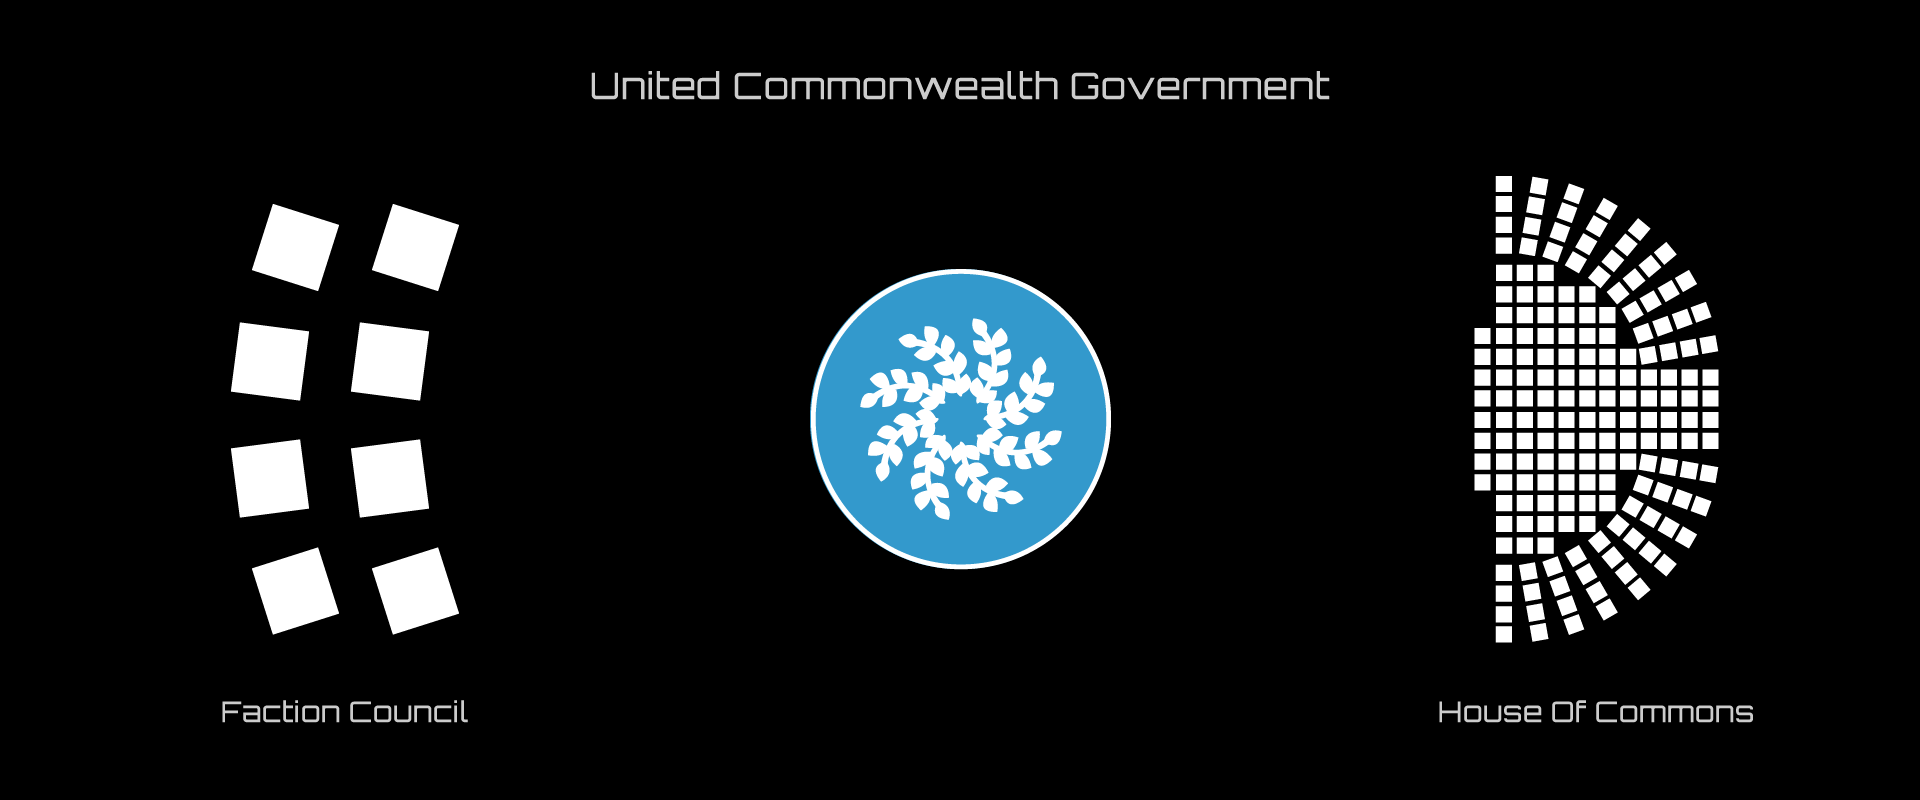 Commonwealth Government Structure